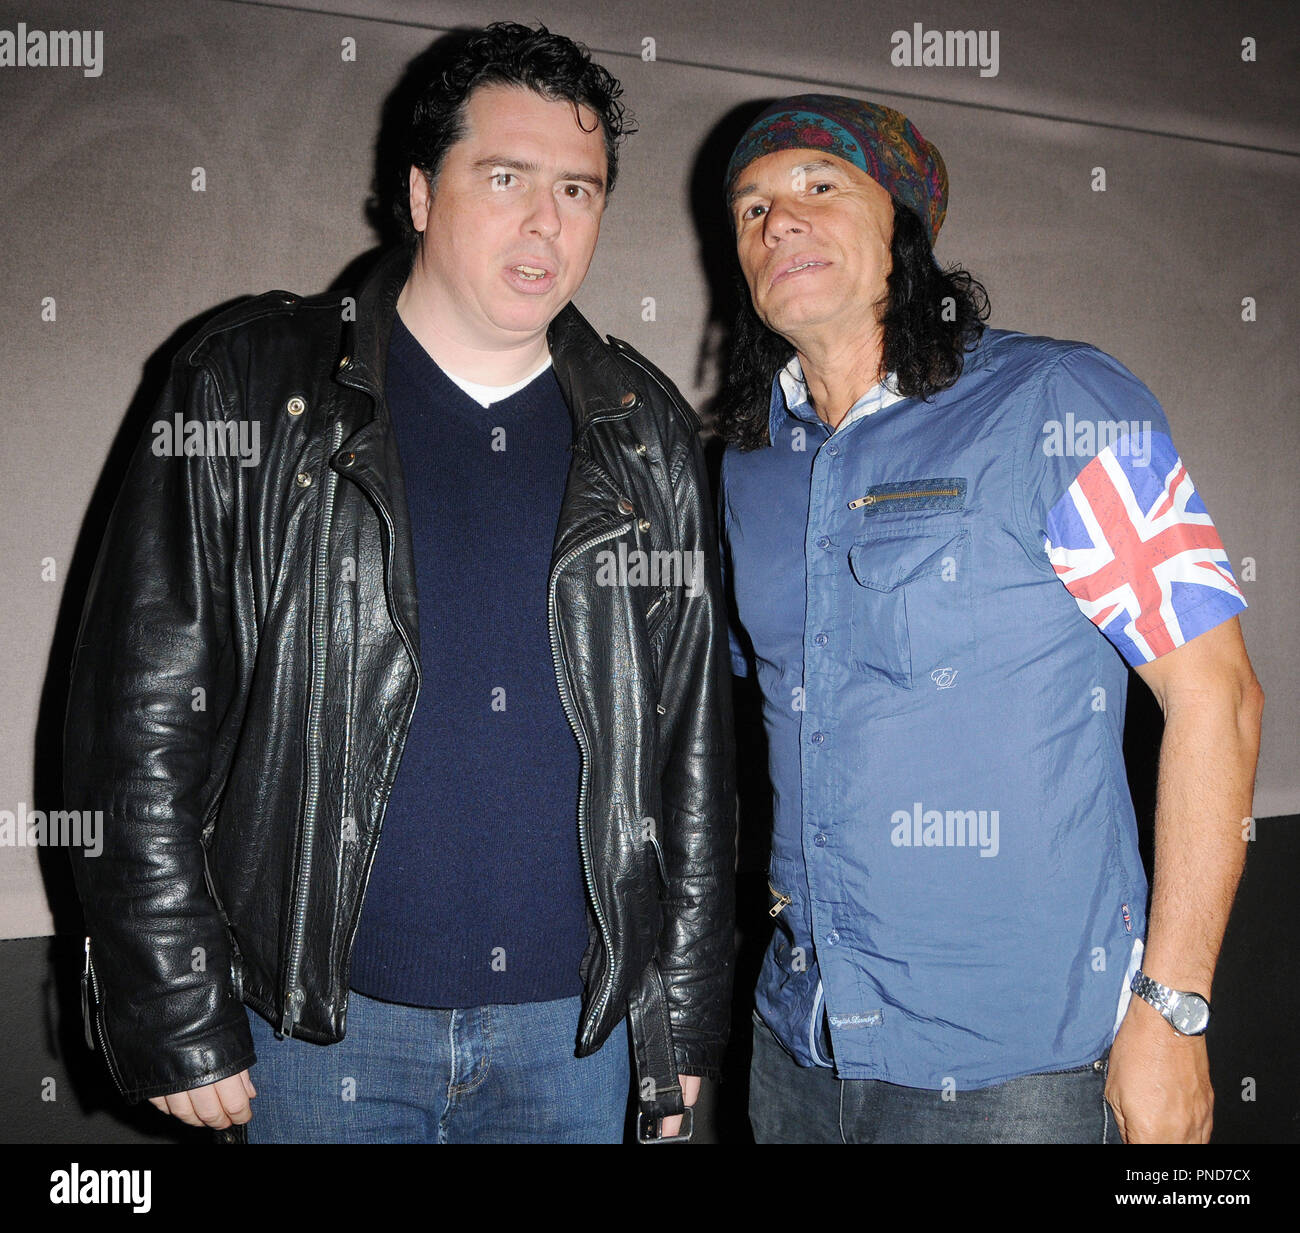 Sacha Gervasi and DJ Wayne Jobson of Indie 103.1 at the Q&A and Reception in celebration of the DVD release of 'Anvil The Story of Anvil' held at the WGA in Beverly Hills, CA on Thursday, October 8, 2009. Photo by Richard Soria/ PRPP /PictureLux File Reference # GervasiJobson01_10809PRPP  For Editorial Use Only -  All Rights Reserved - Stock Image